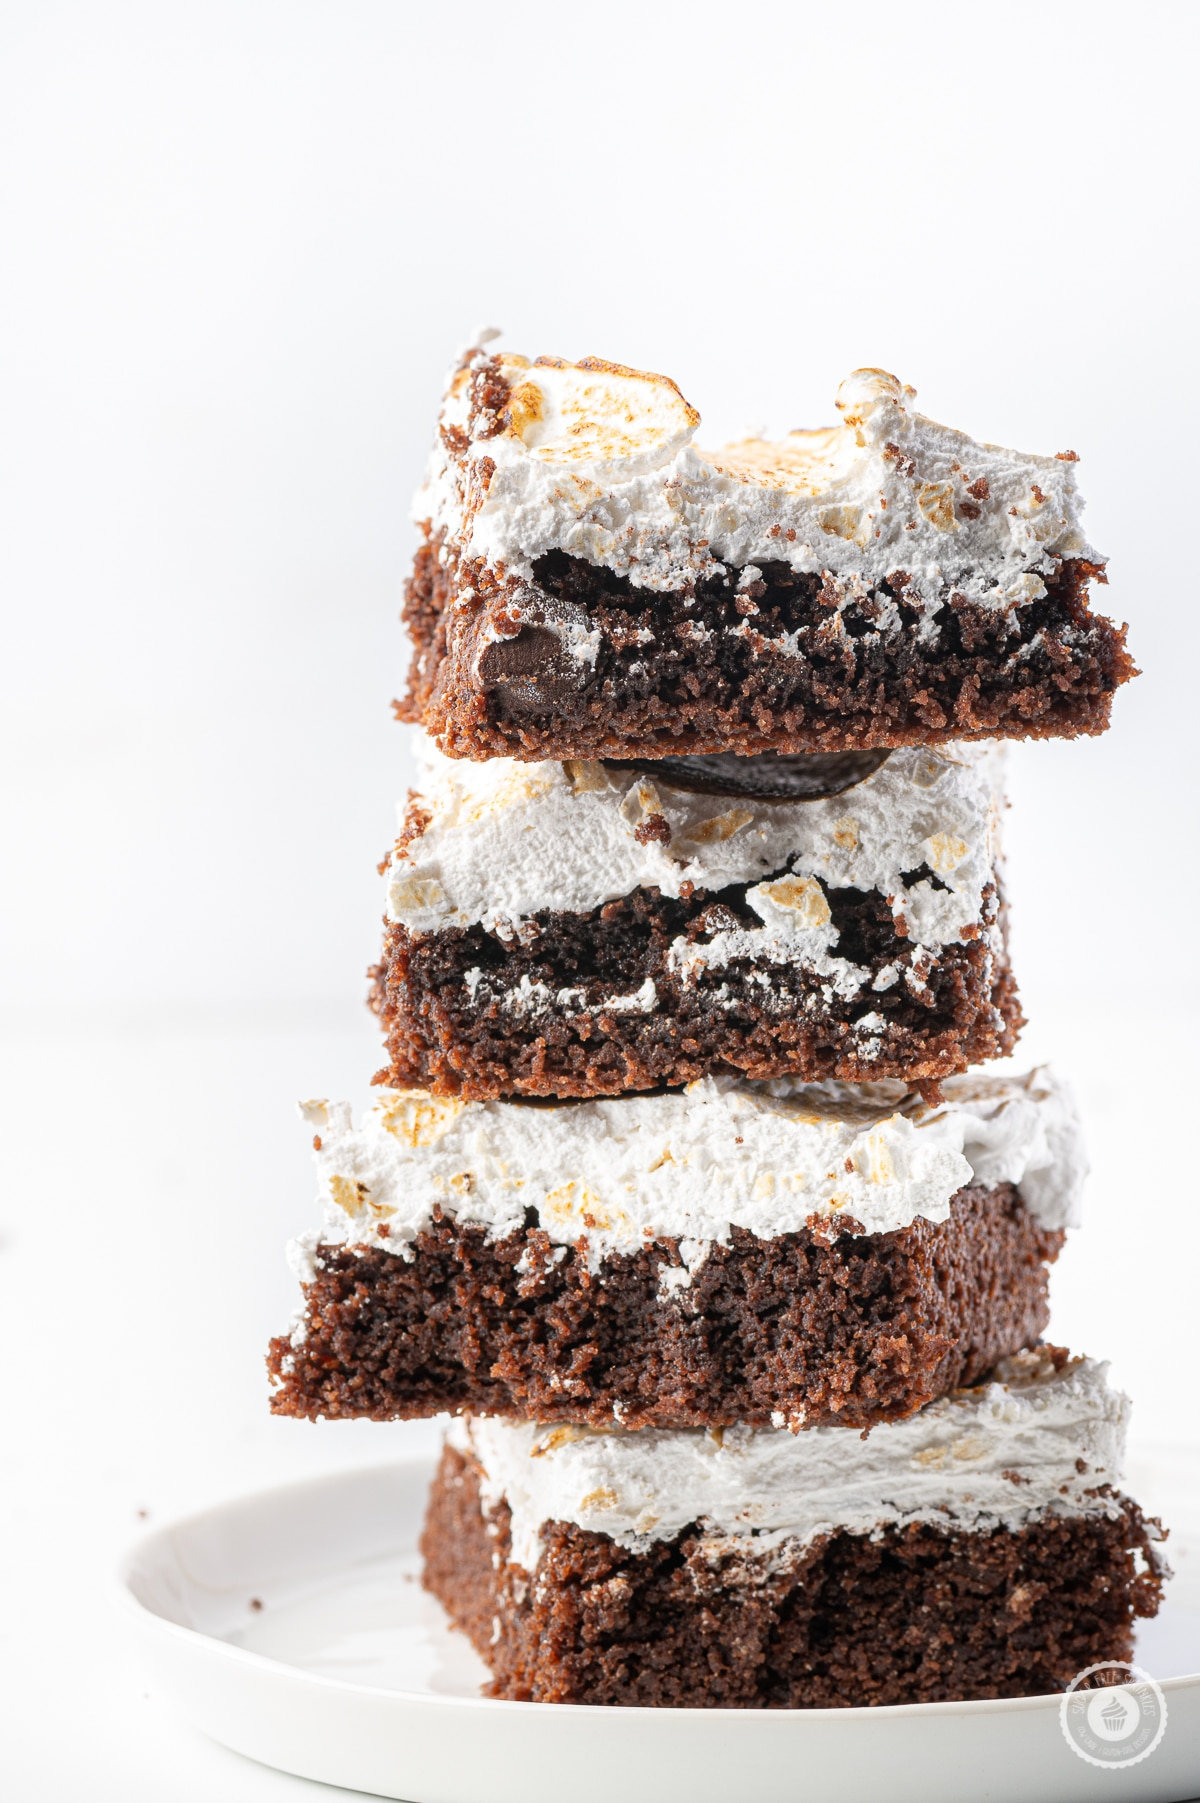 Low carb chocolate brownies with toasted marshmallow topping stacked  on a small white plate against a bright white background